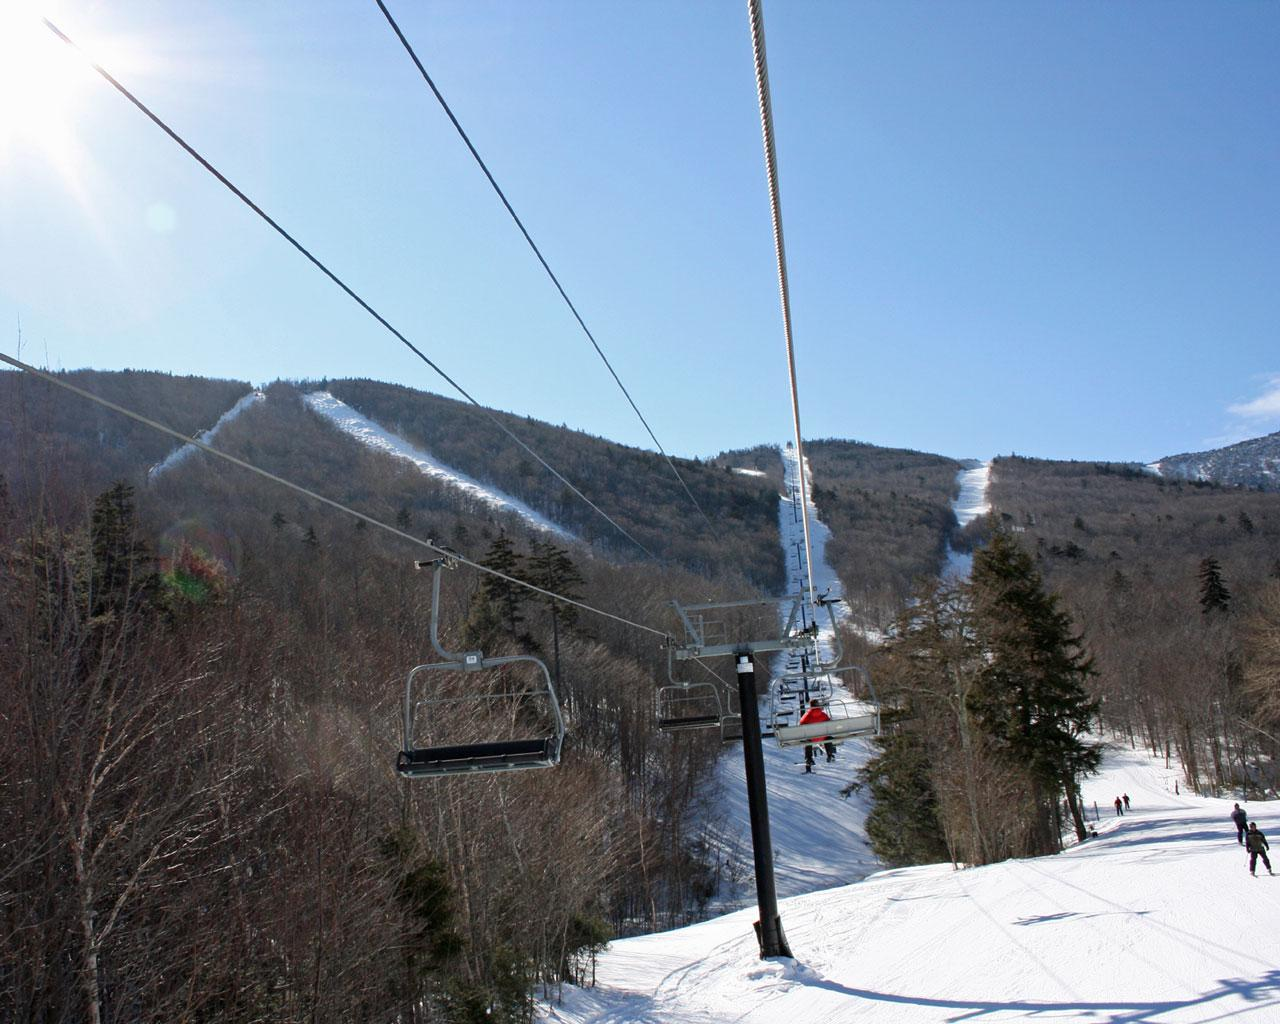 Sugarbush, Vermont - Super Bravo Lift Wallpaper #2 1280 x 1024